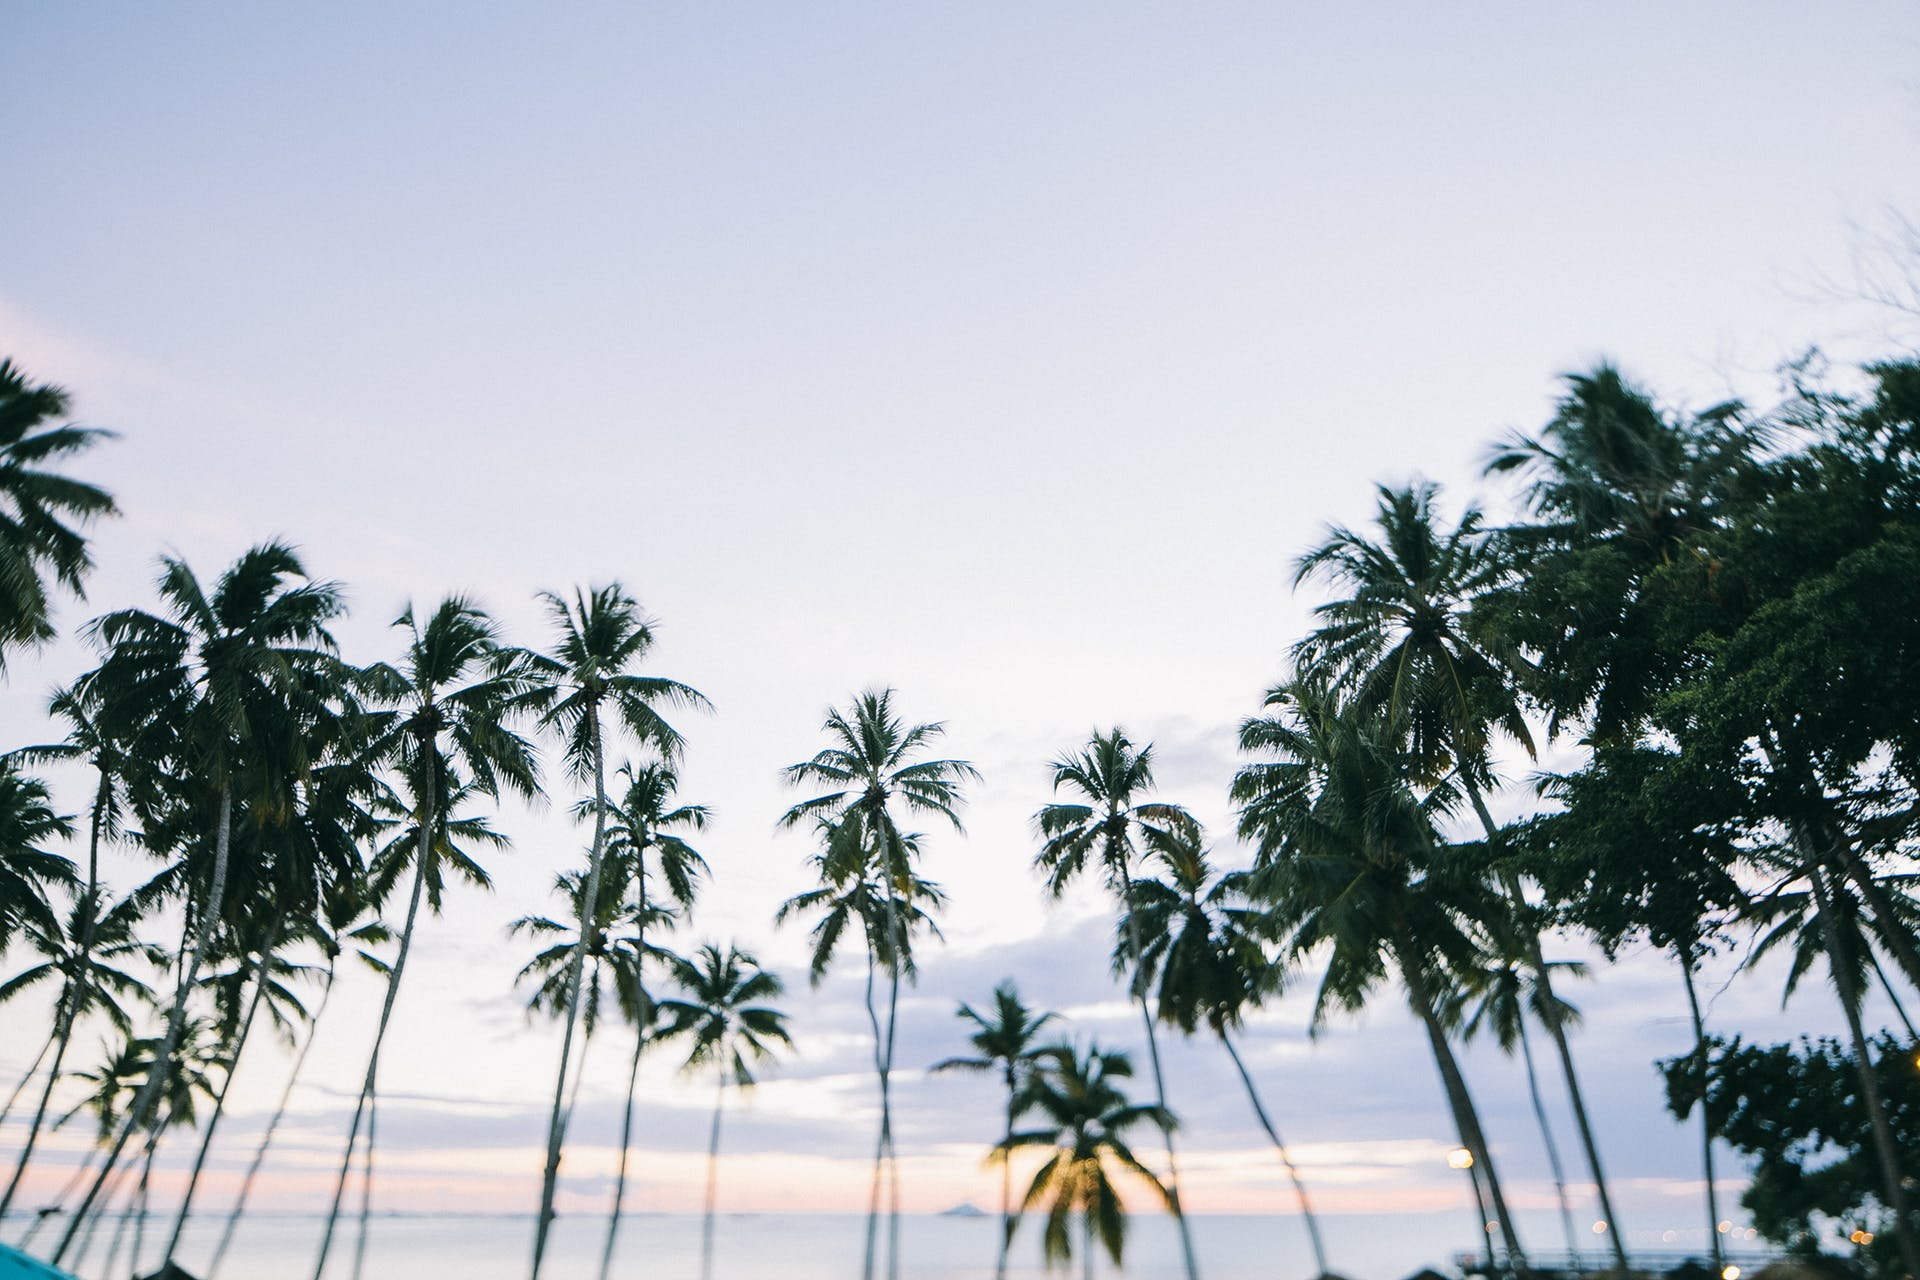 coconut trees palm trees trees